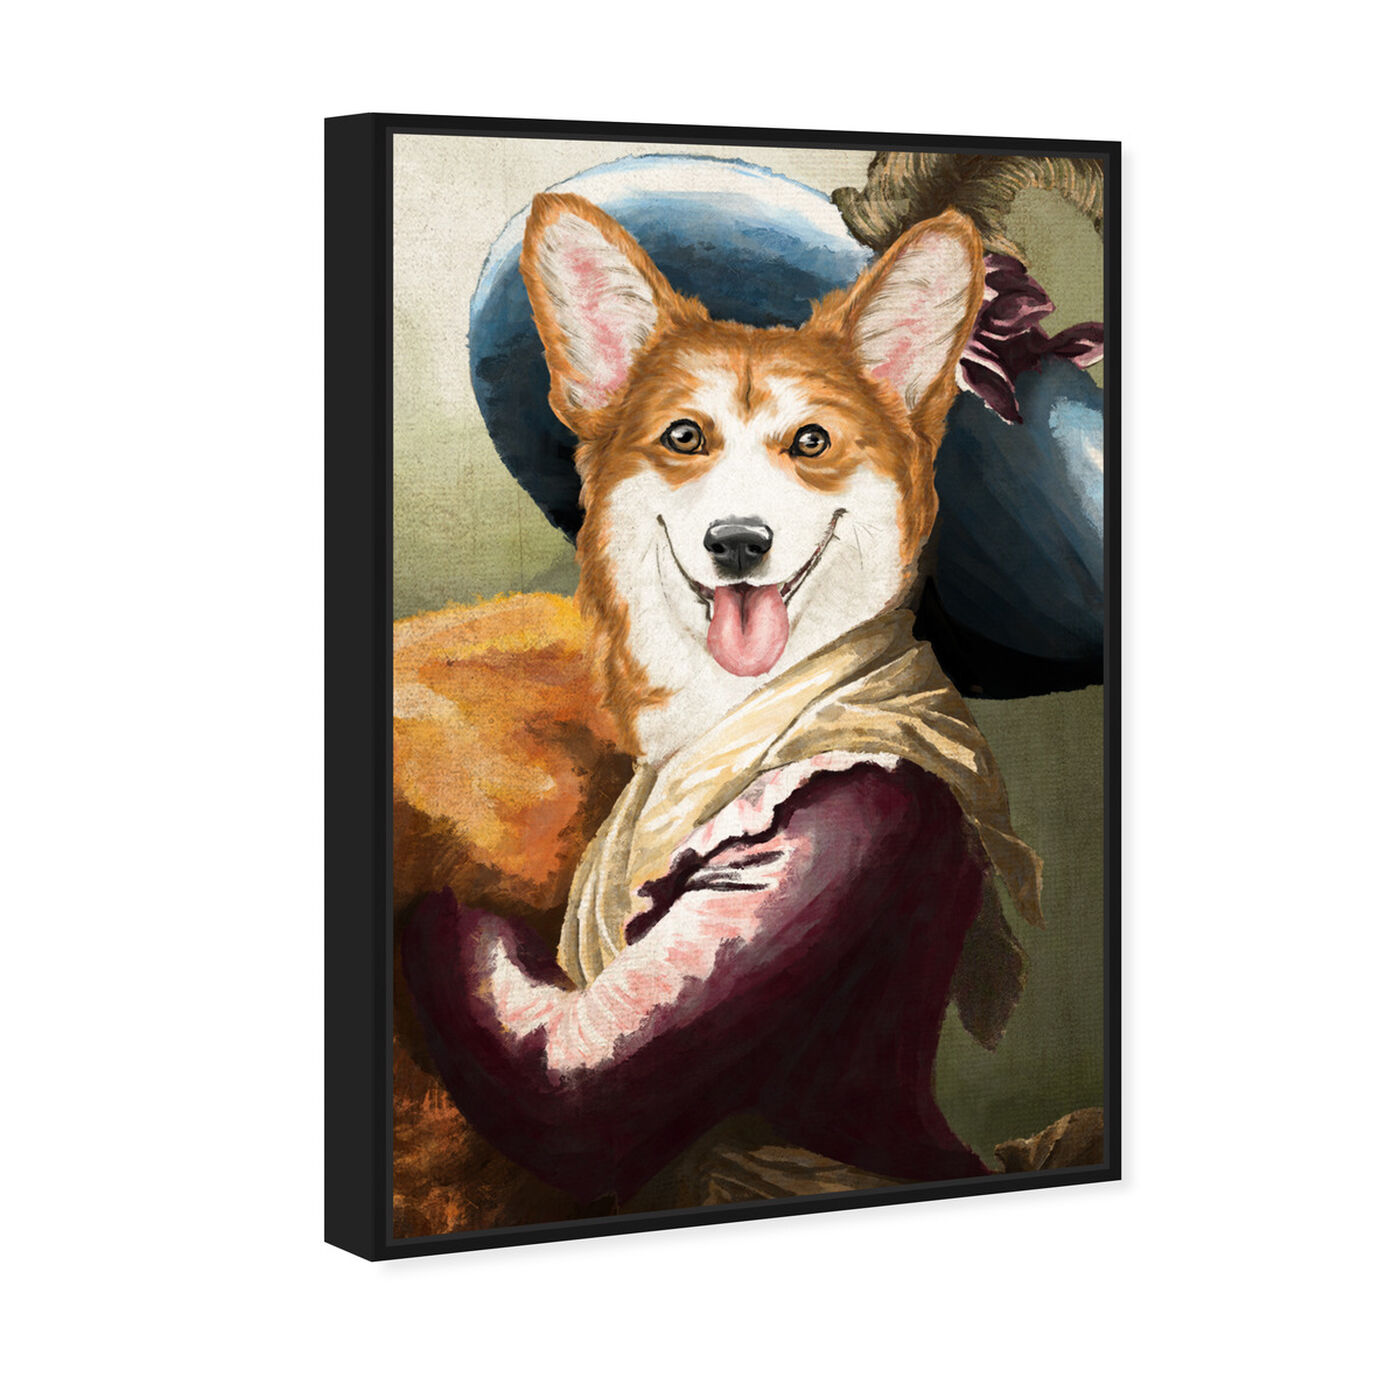 Angled view of Elegant Corgi featuring animals and dogs and puppies art.